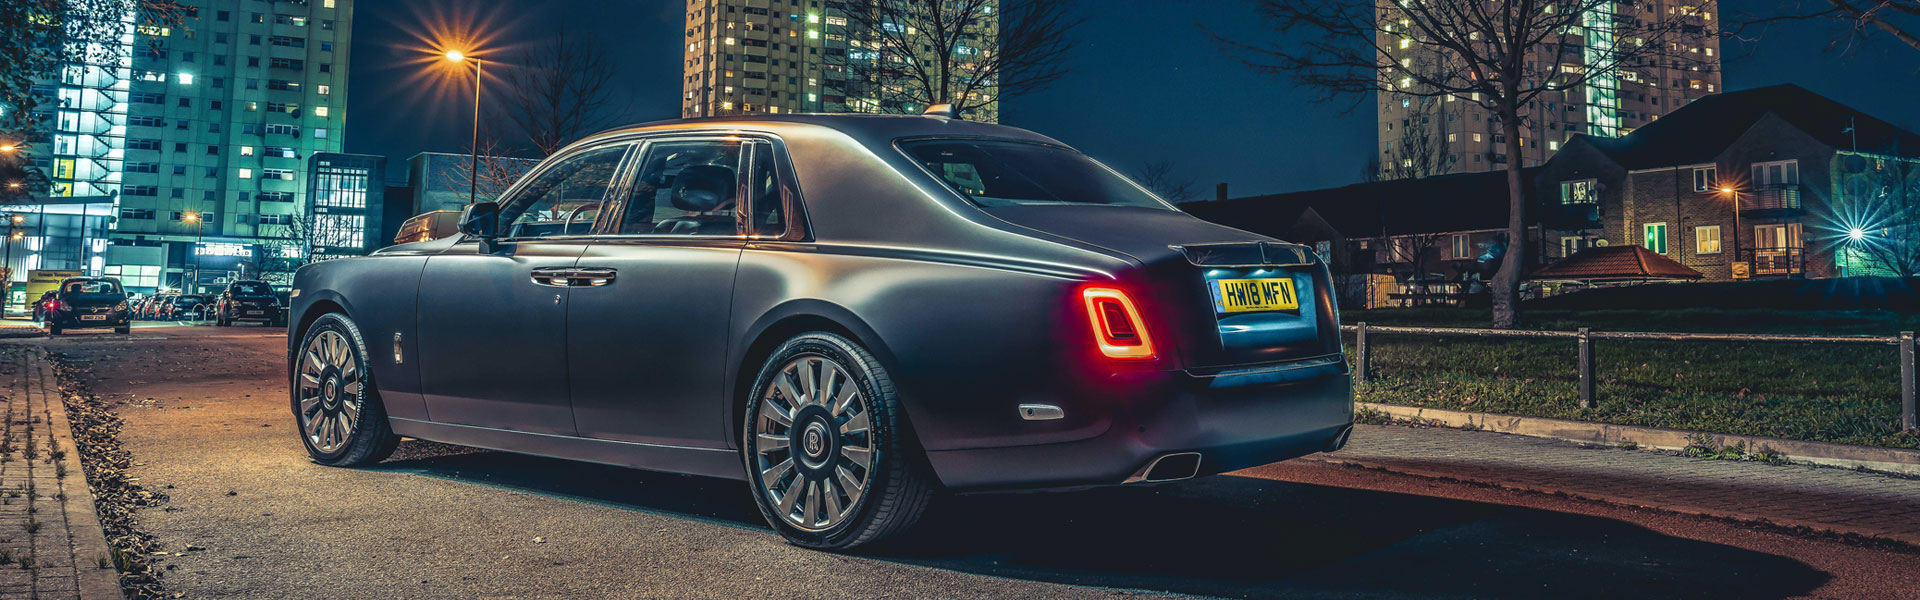 Side view of Rolls-Royce Phantom